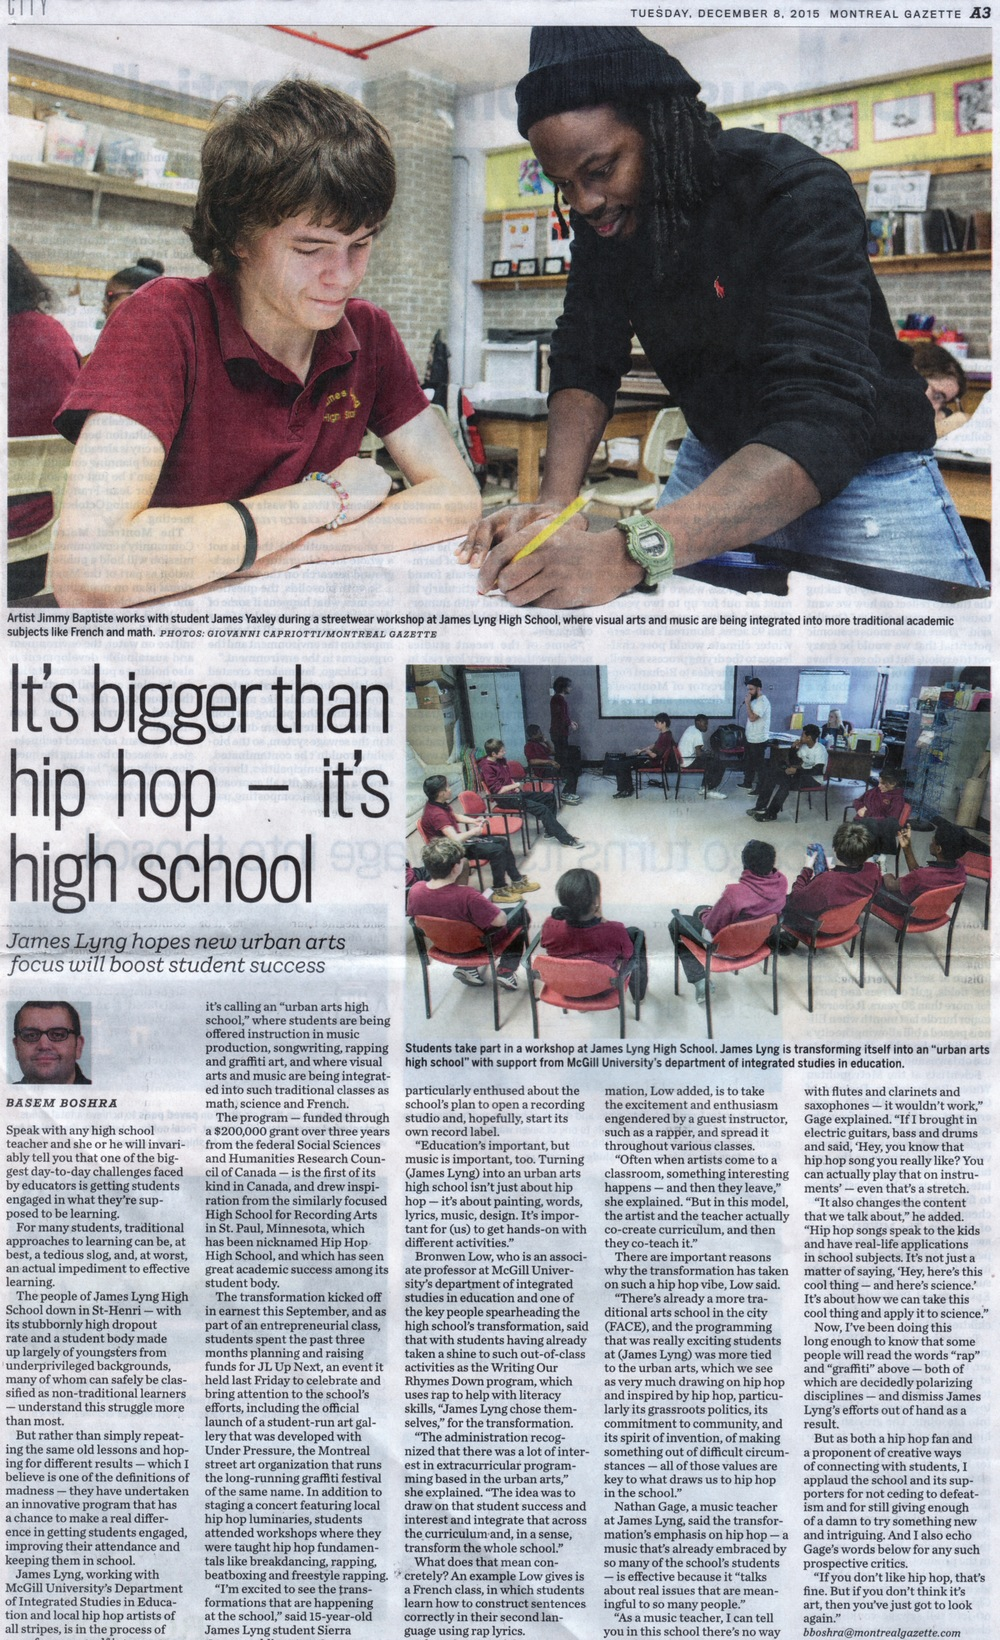 https://montrealgazette.com/opinion/columnists/column-its-bigger-than-hip-hop-its-high-school